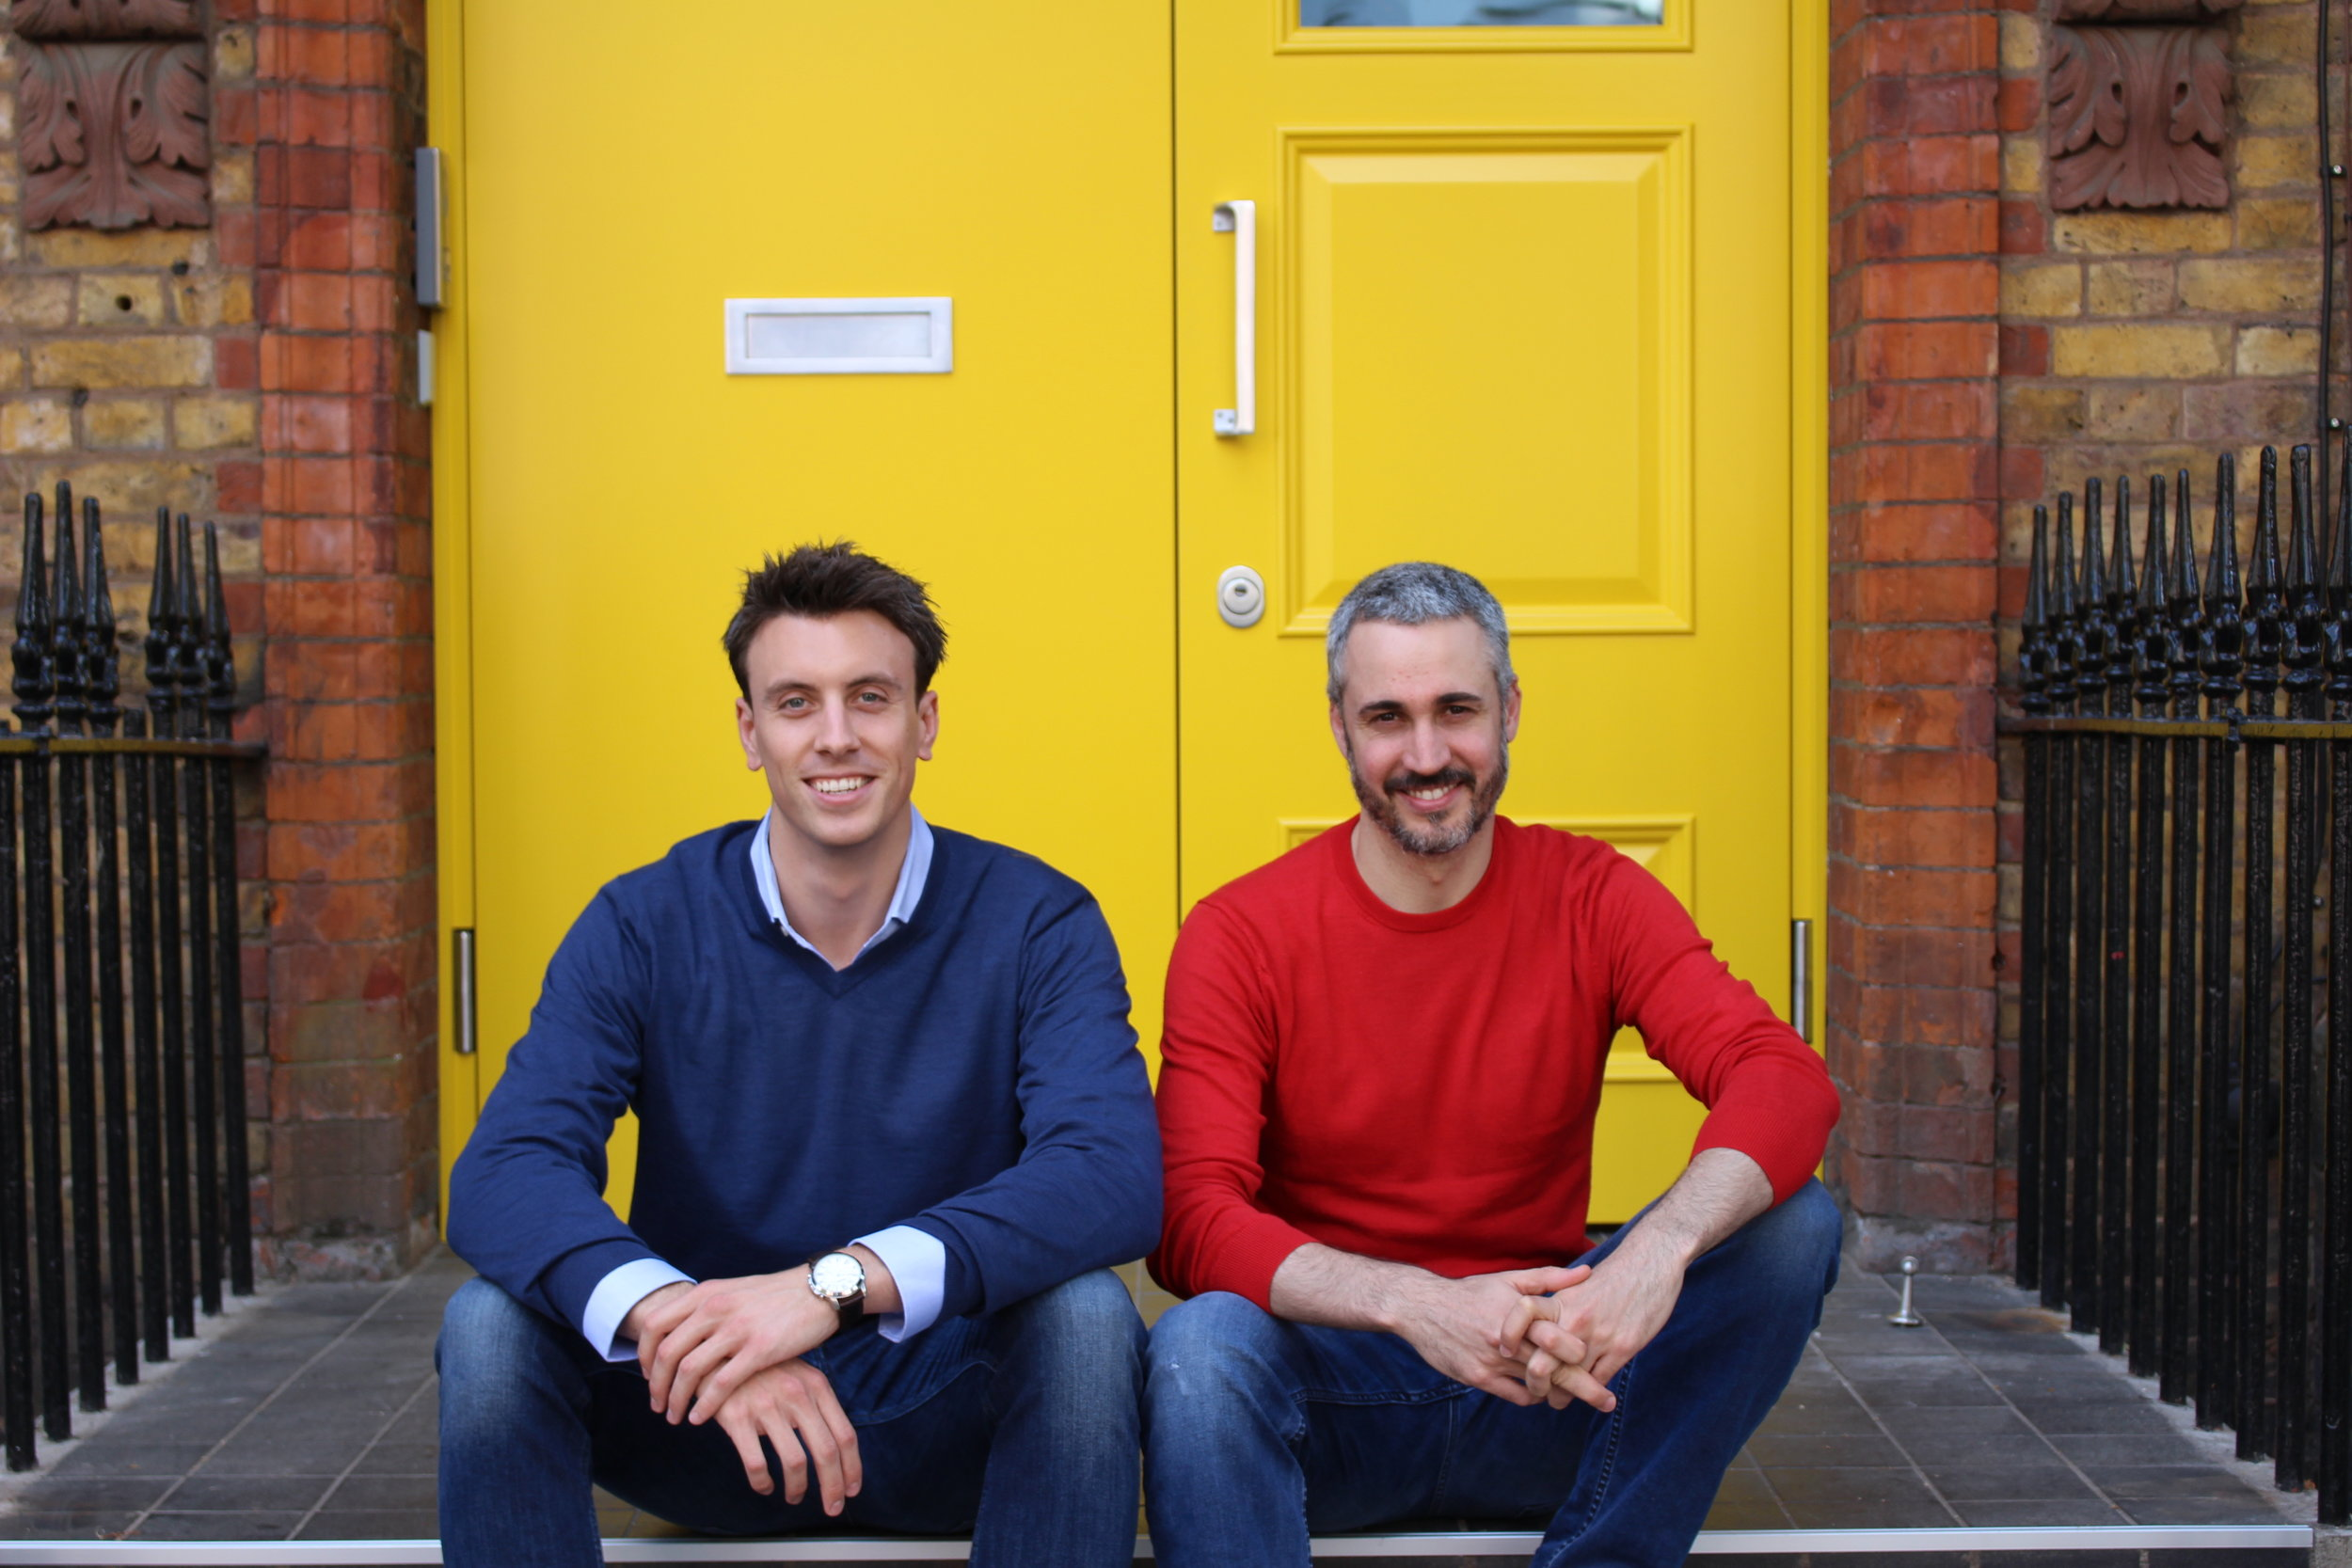 Simon Phelan and Andreu Tobella (chief product officer), Hometree's co-founders